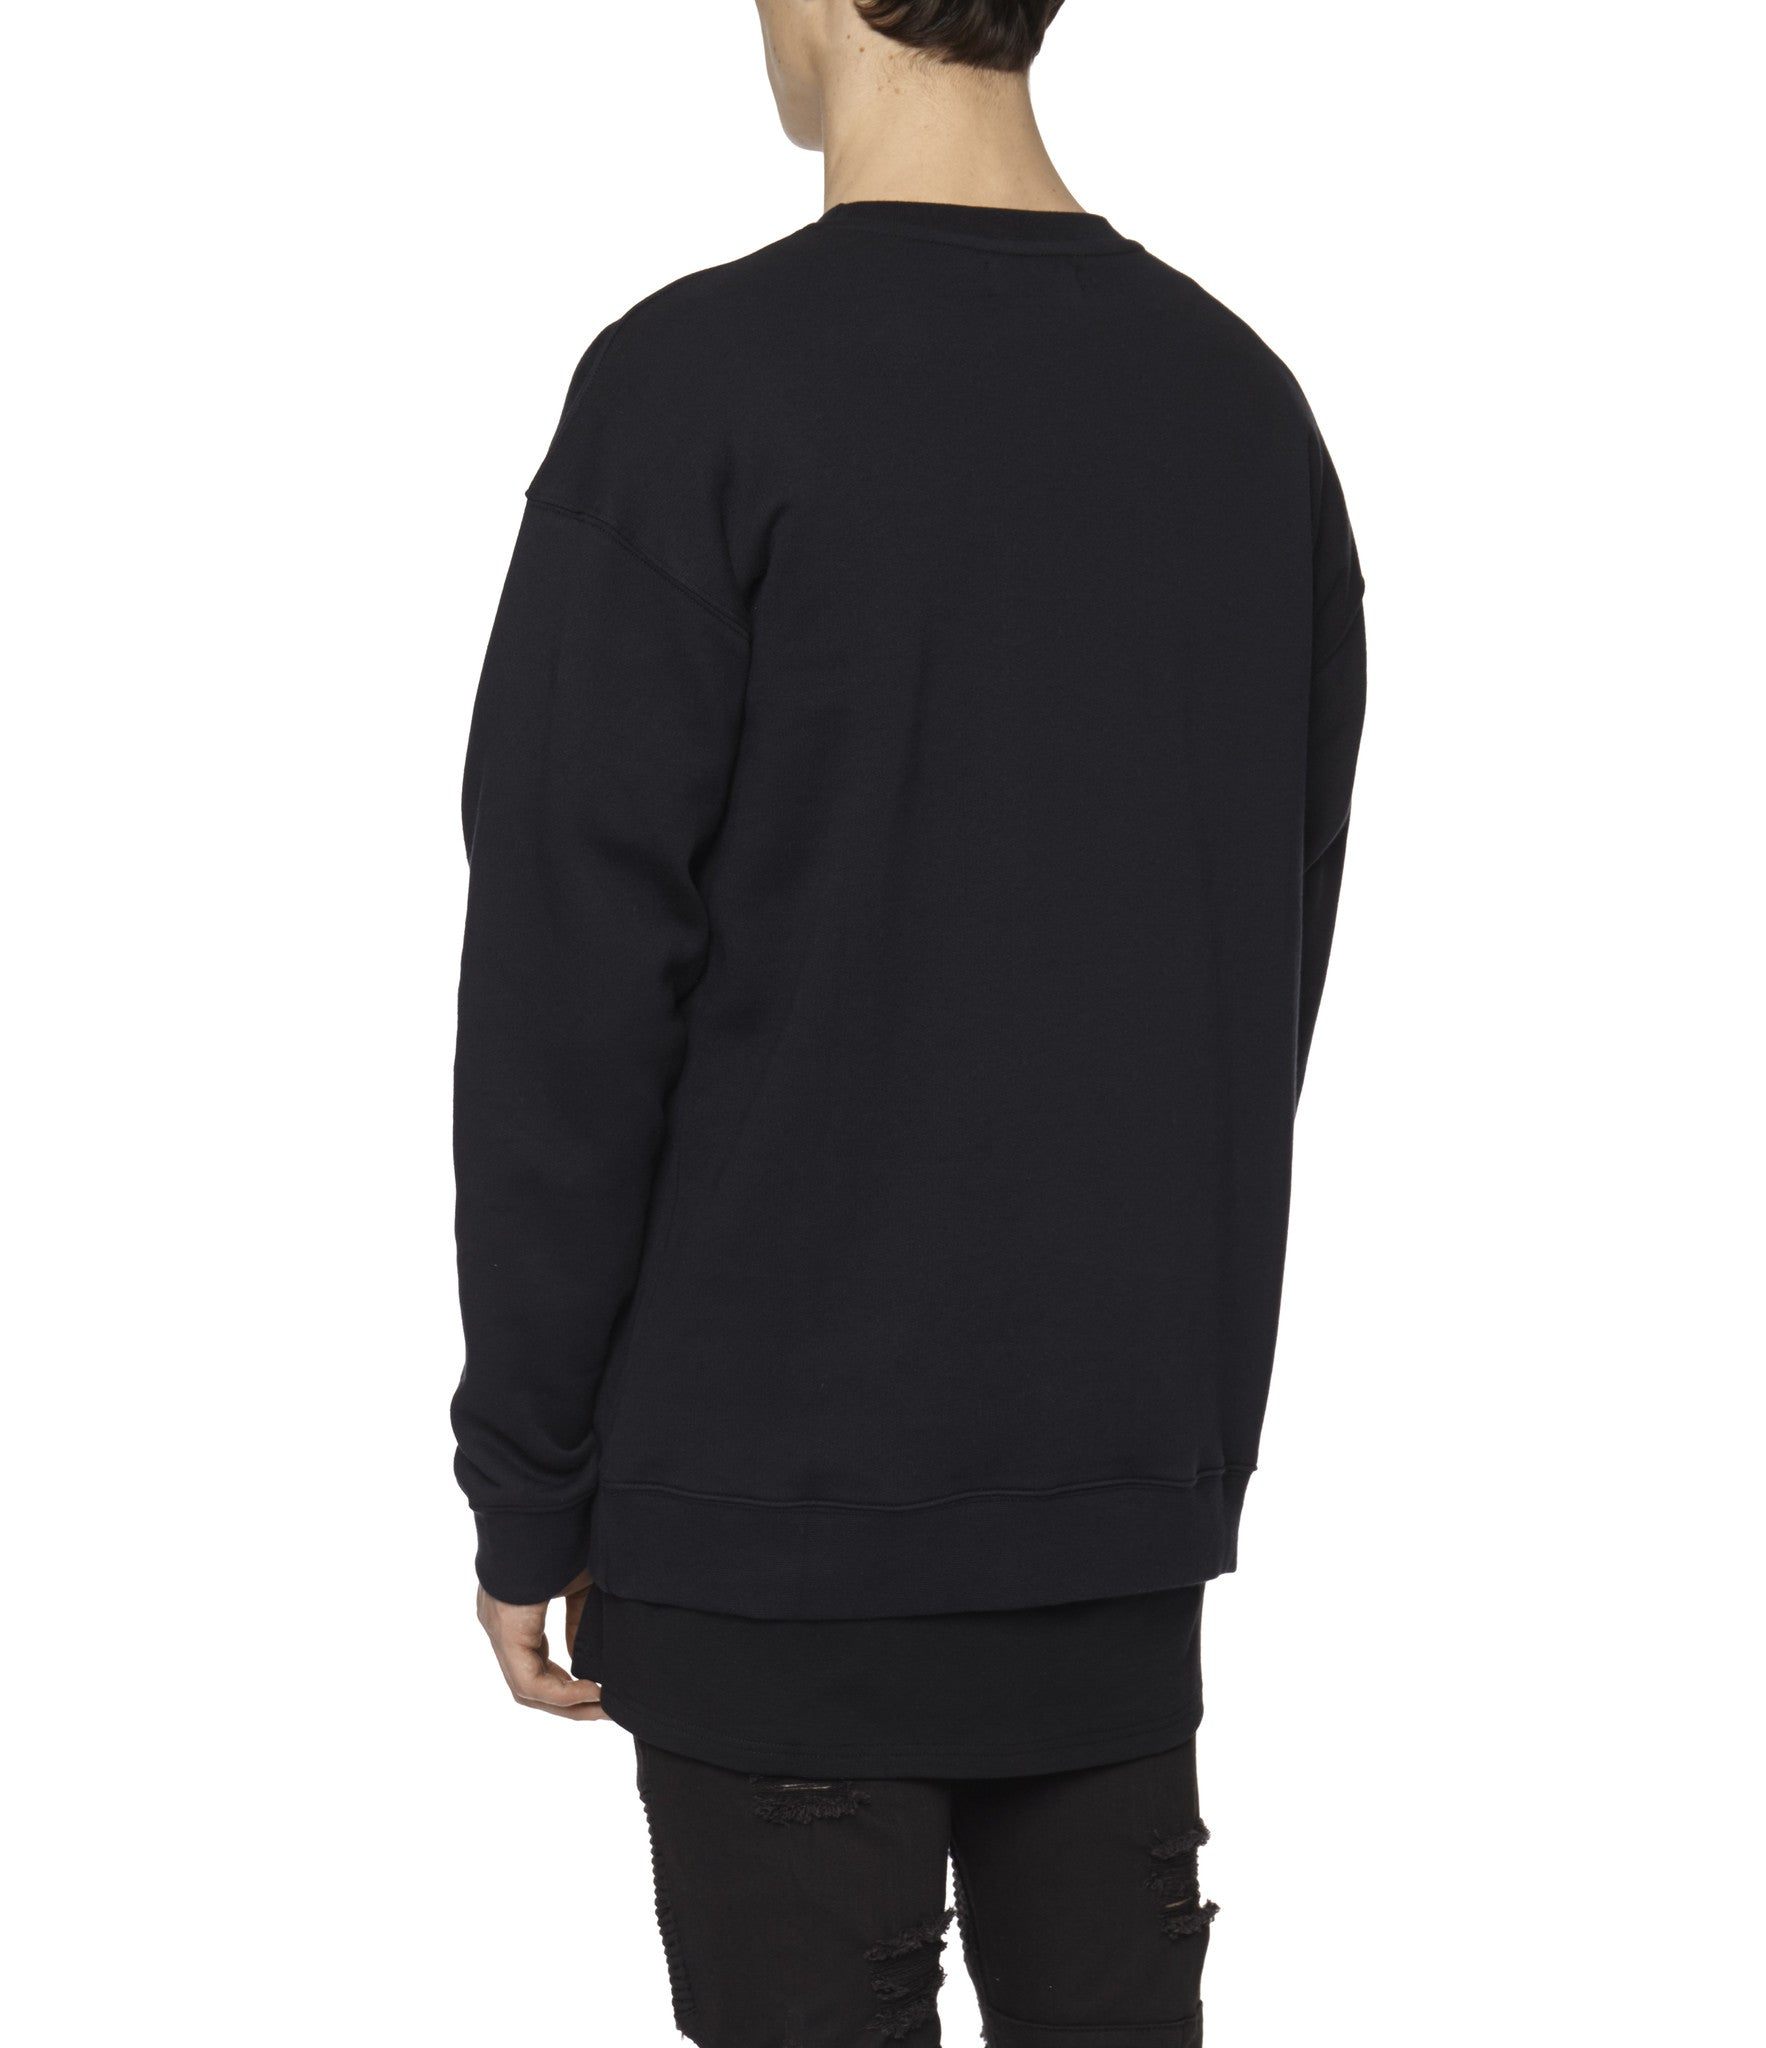 SW315 Circle Logo Printed Sweatshirt - Black - underated london - underatedco - 6